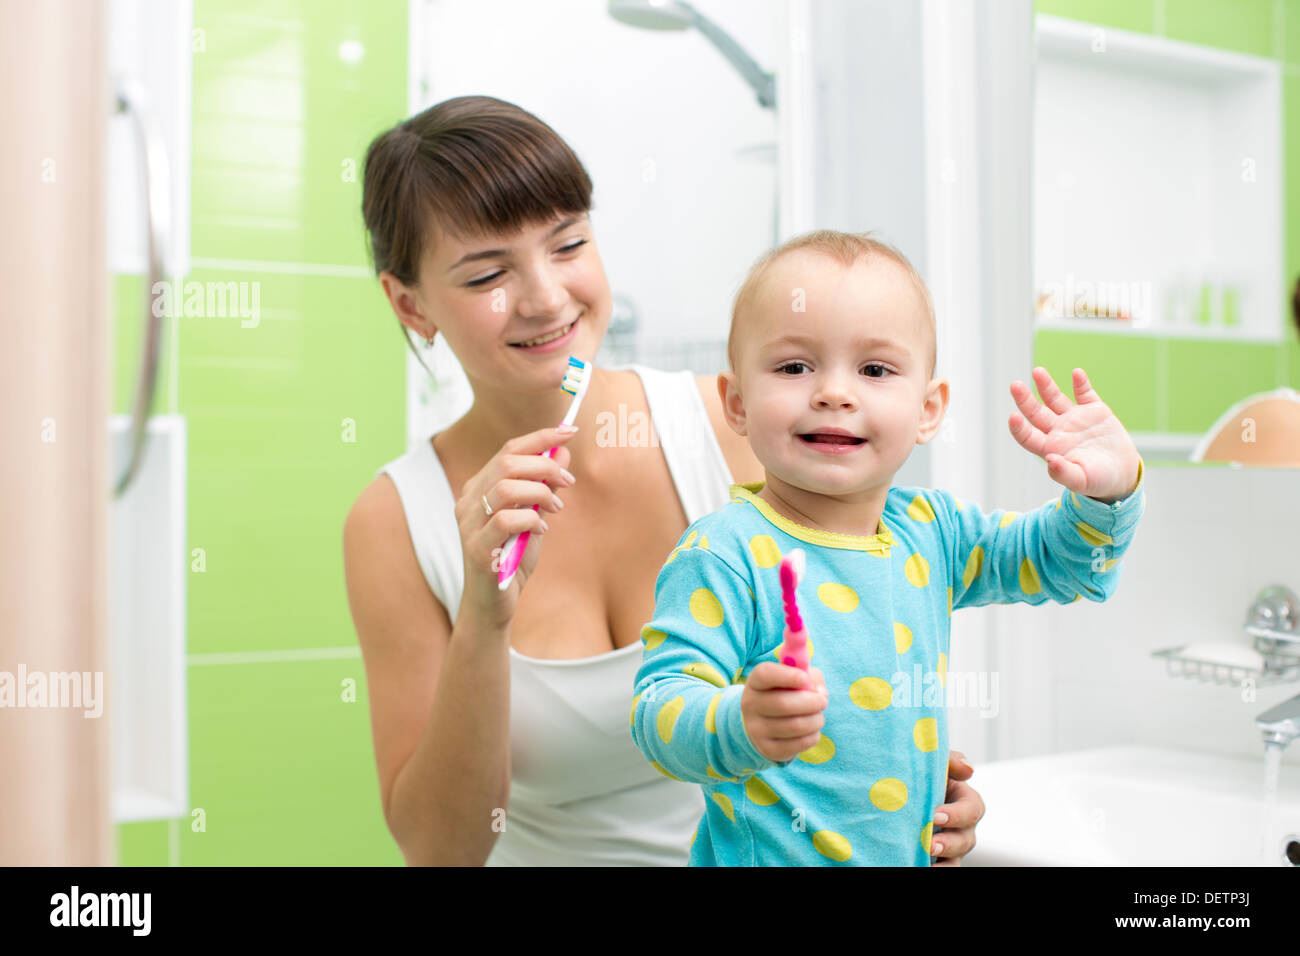 mother with baby brushing teeth - Stock Image